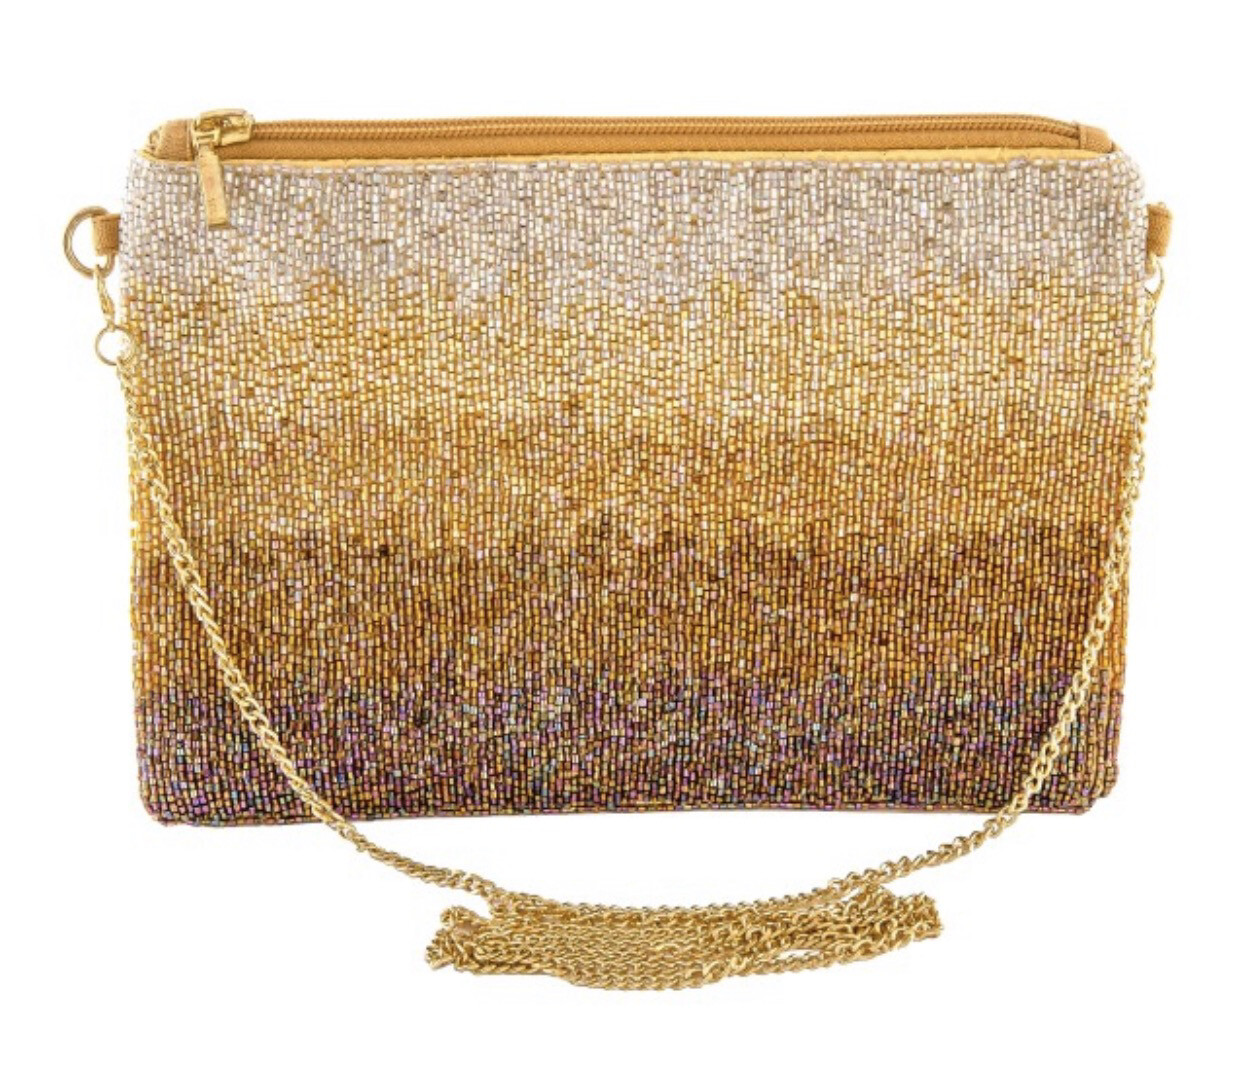 High Quality Seed Beaded Golden Ombré Handbag